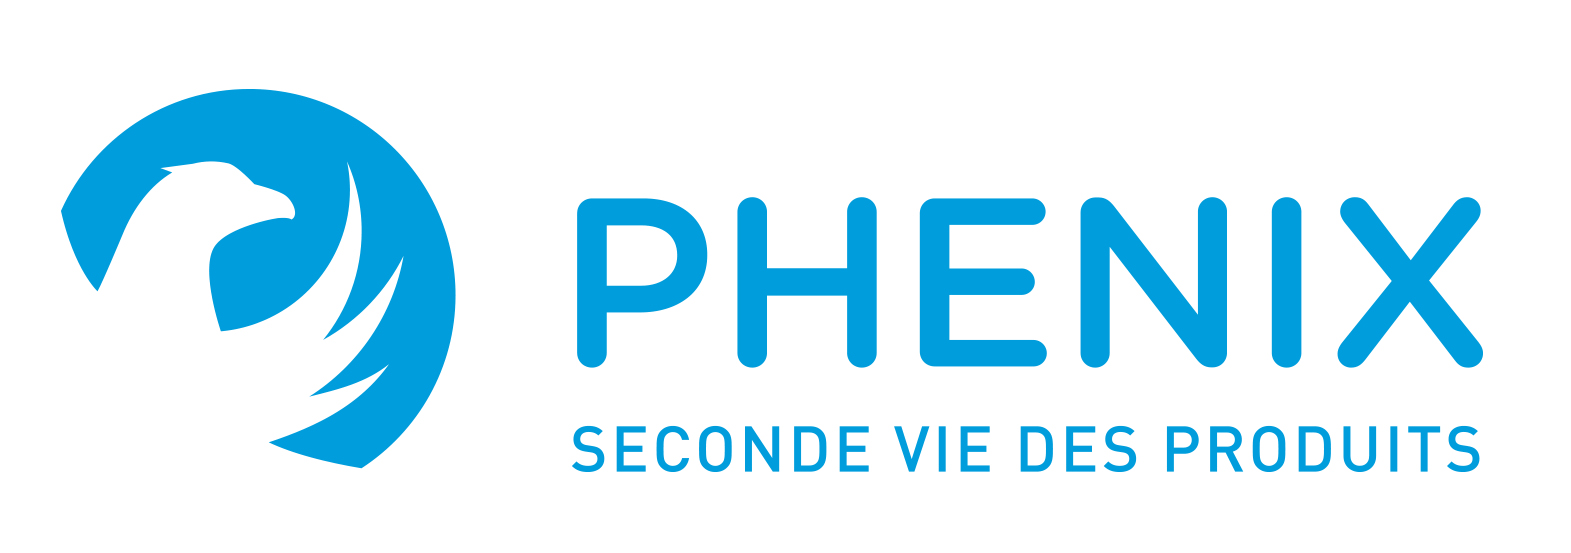 L'entrepreneuriat responsable : Phenix, une start-up d'avenir